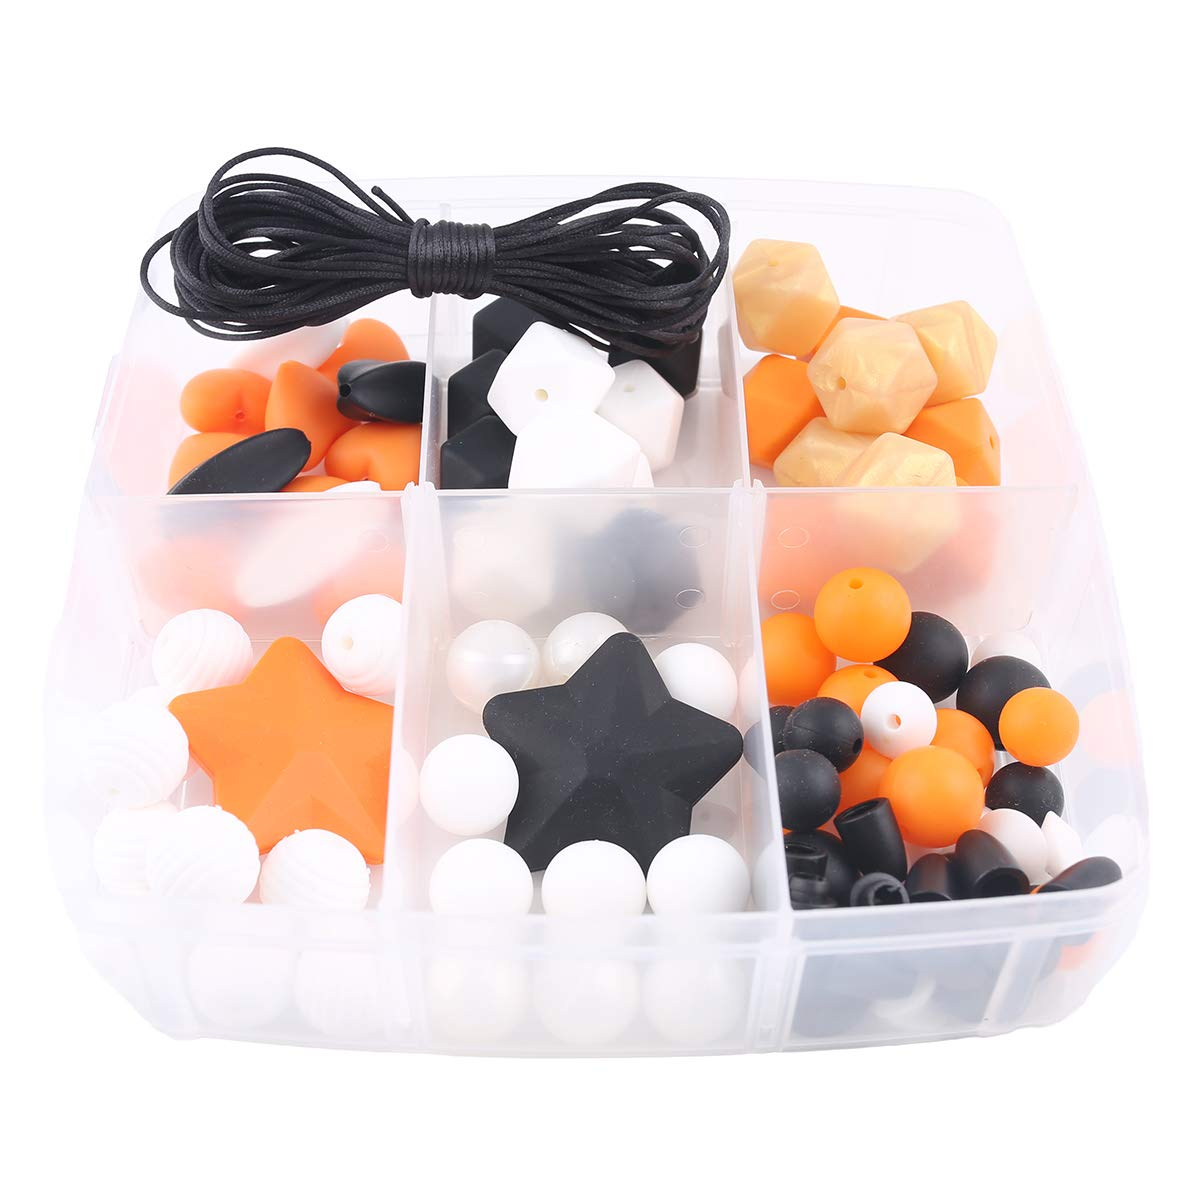 Baby Love Home DIY Teething Beads Halloween Kit 86pc Pumpkin Mix Color Original Silicone Chewing Teether Necklace Chew Jewelry Pacifier Clip Accessories Montessori Toy by Baby Love Home